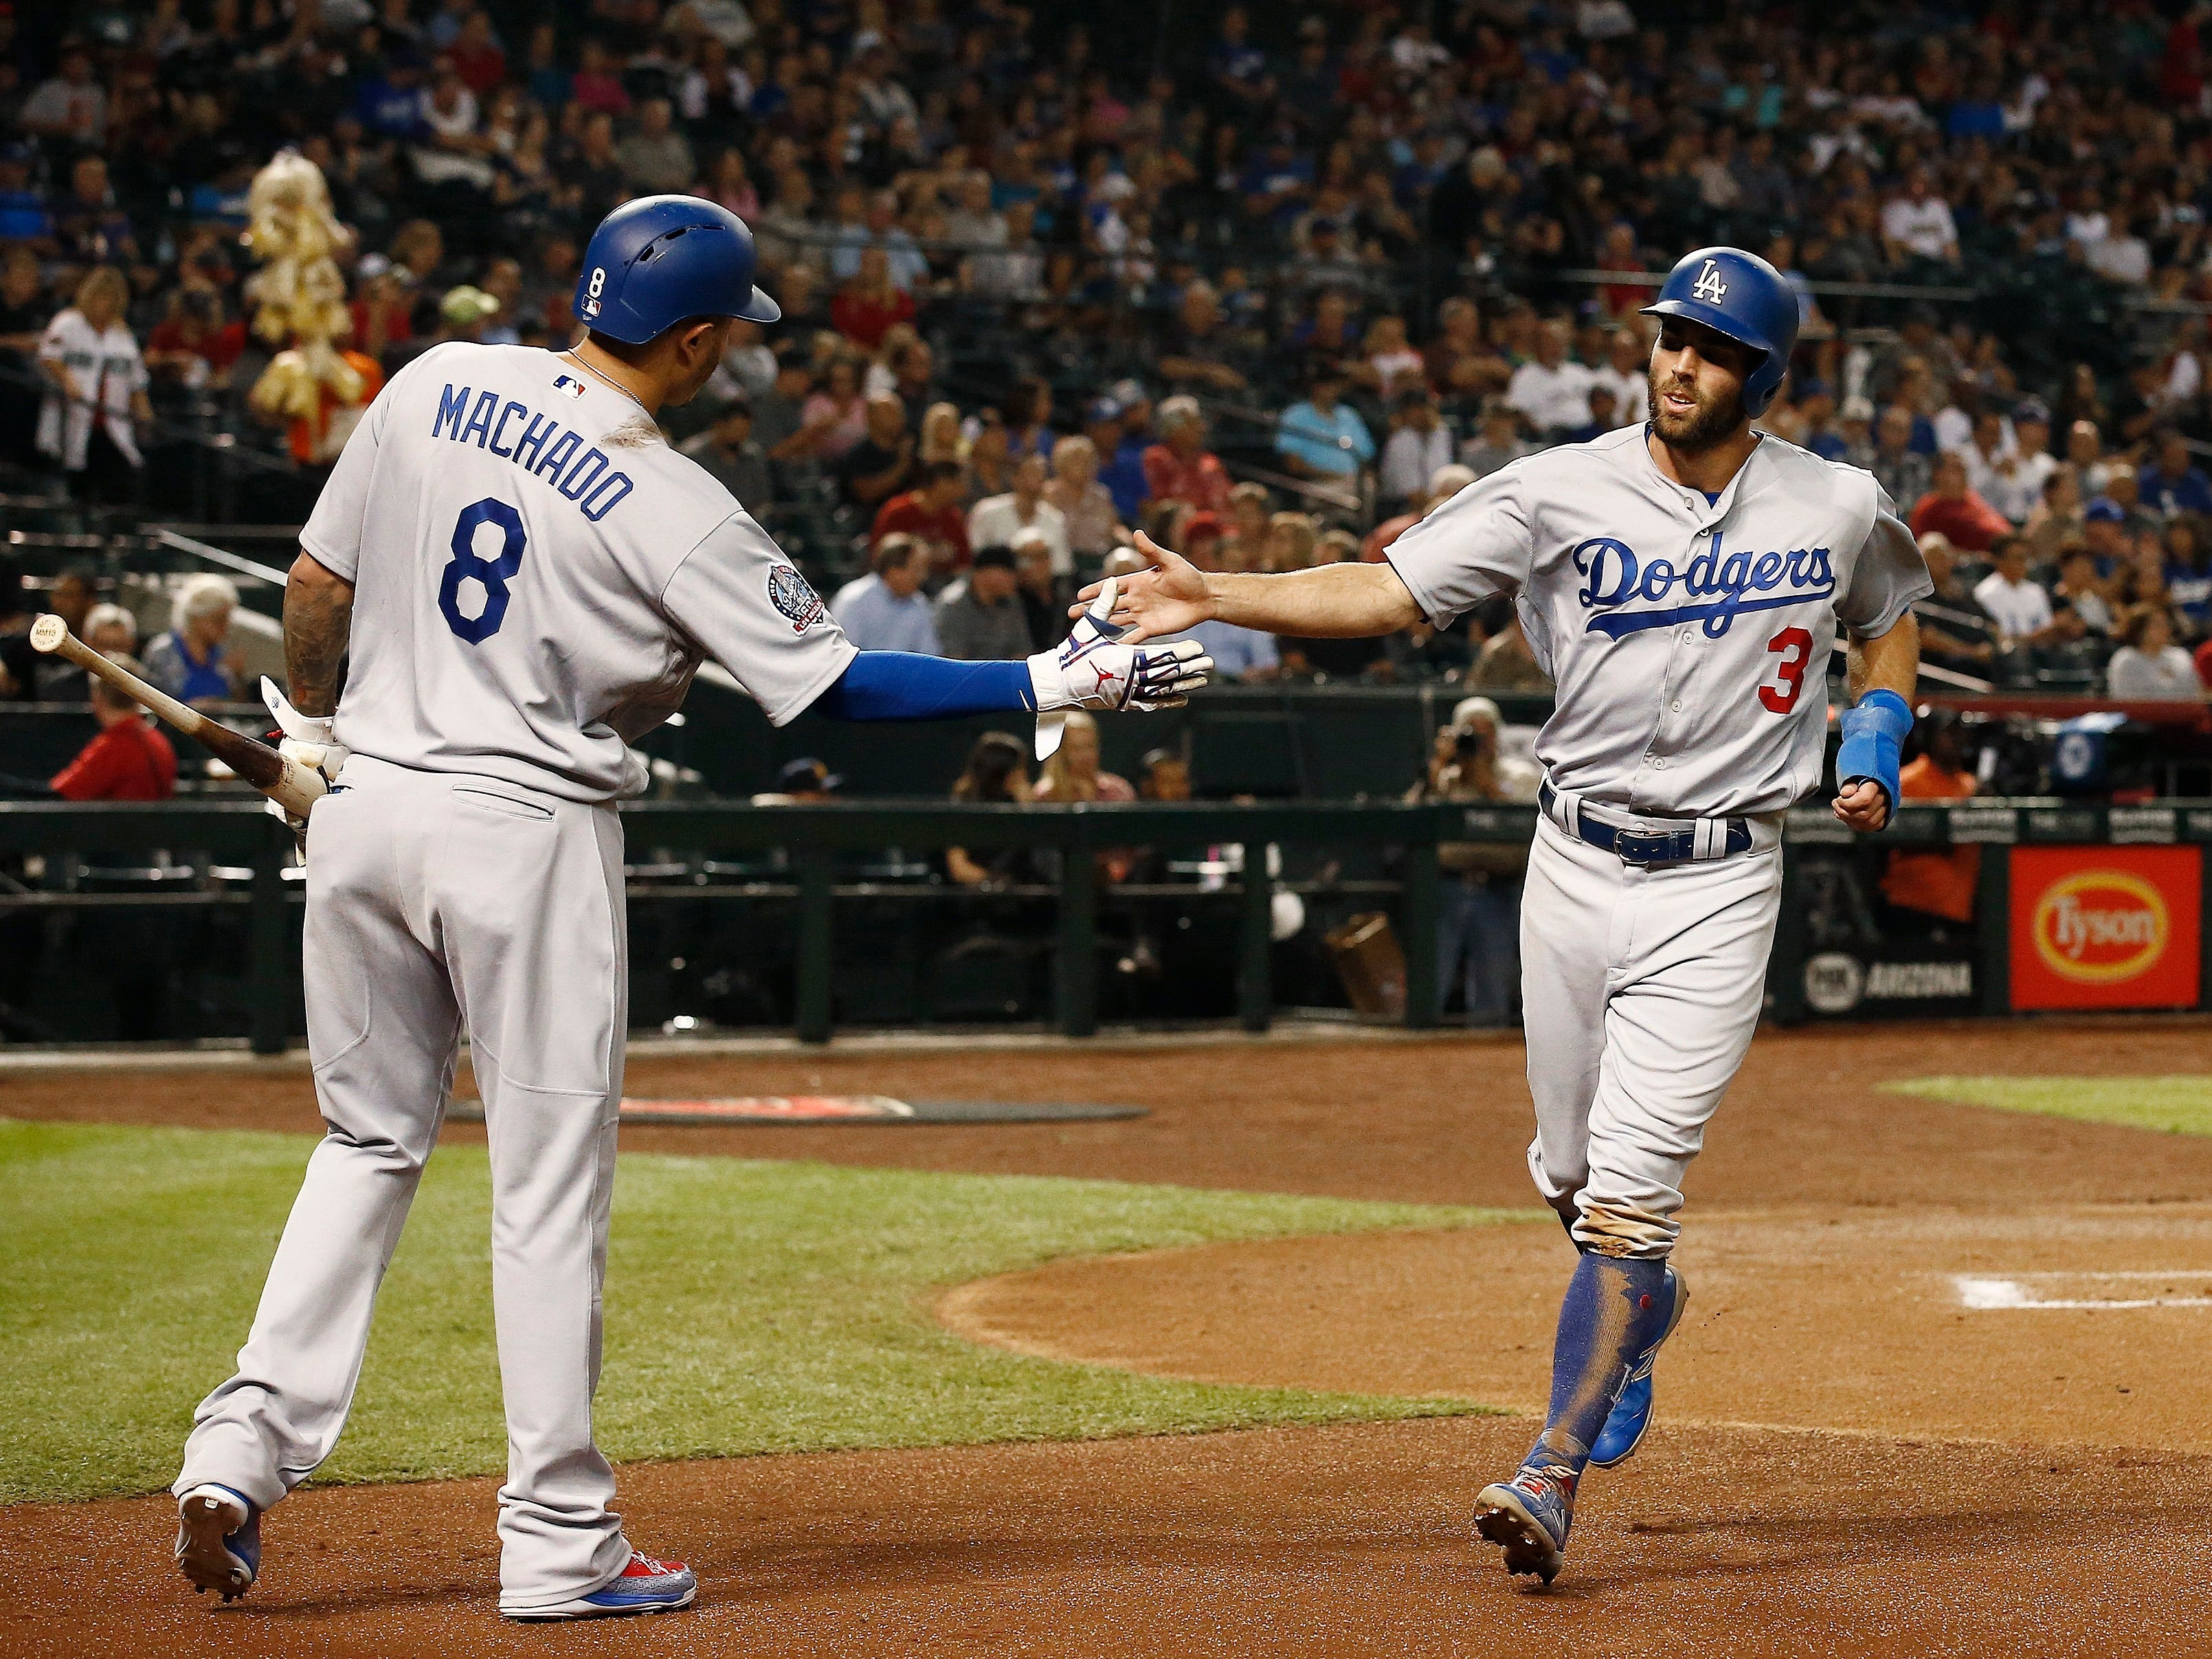 Los Angeles Dodgers' Chris Taylor (3) celebrates his run scored against the Arizona Diamondbacks with Manny Machado (8) during the first inning of a baseball game, Monday, Sept. 24, 2018, in Phoenix. (AP Photo/Ross D. Franklin)